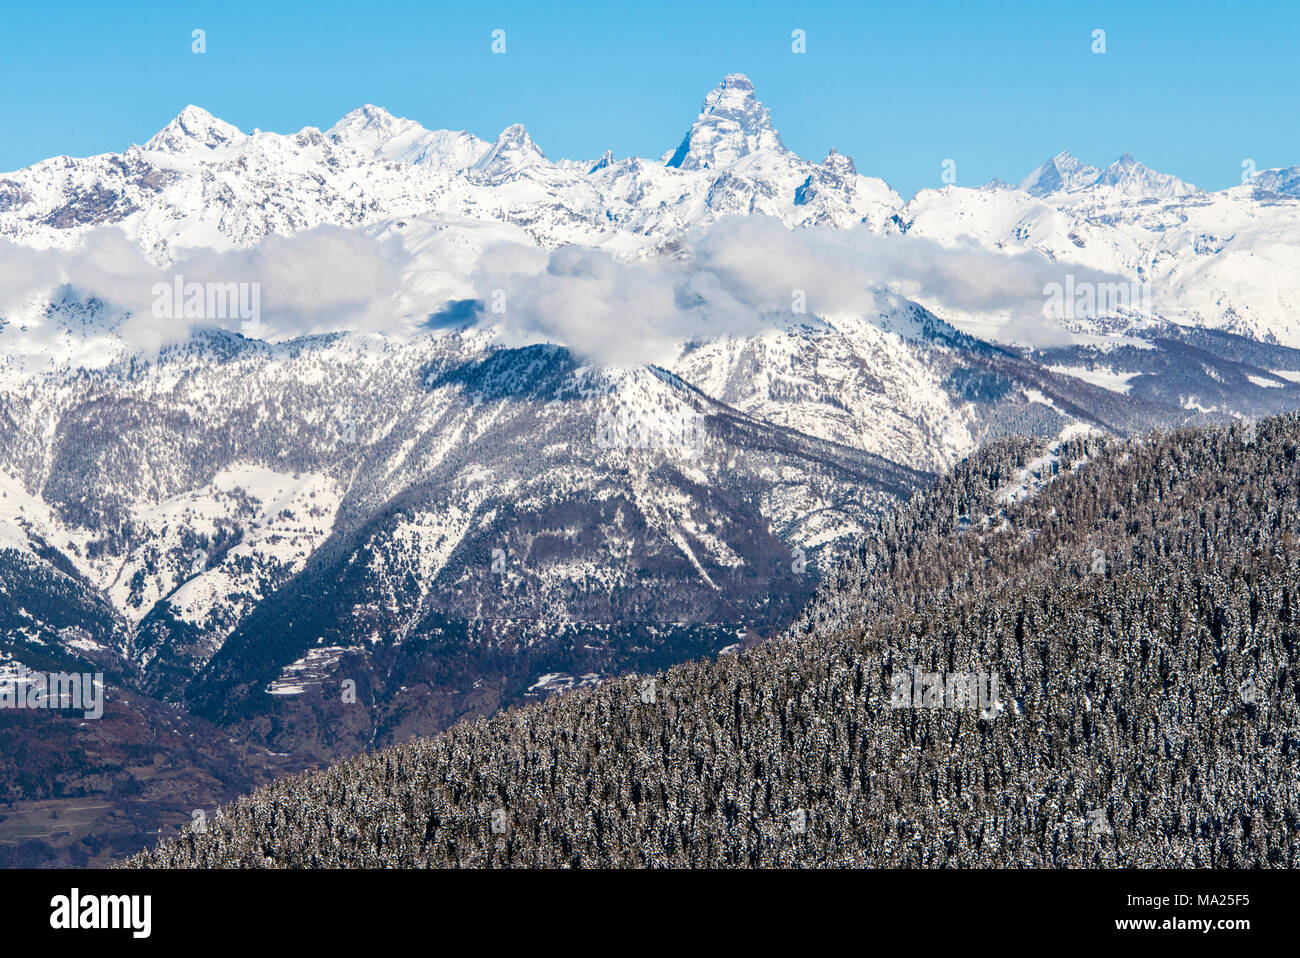 Views from Pila ski resort, Aosta Valley, Italy - Stock Image